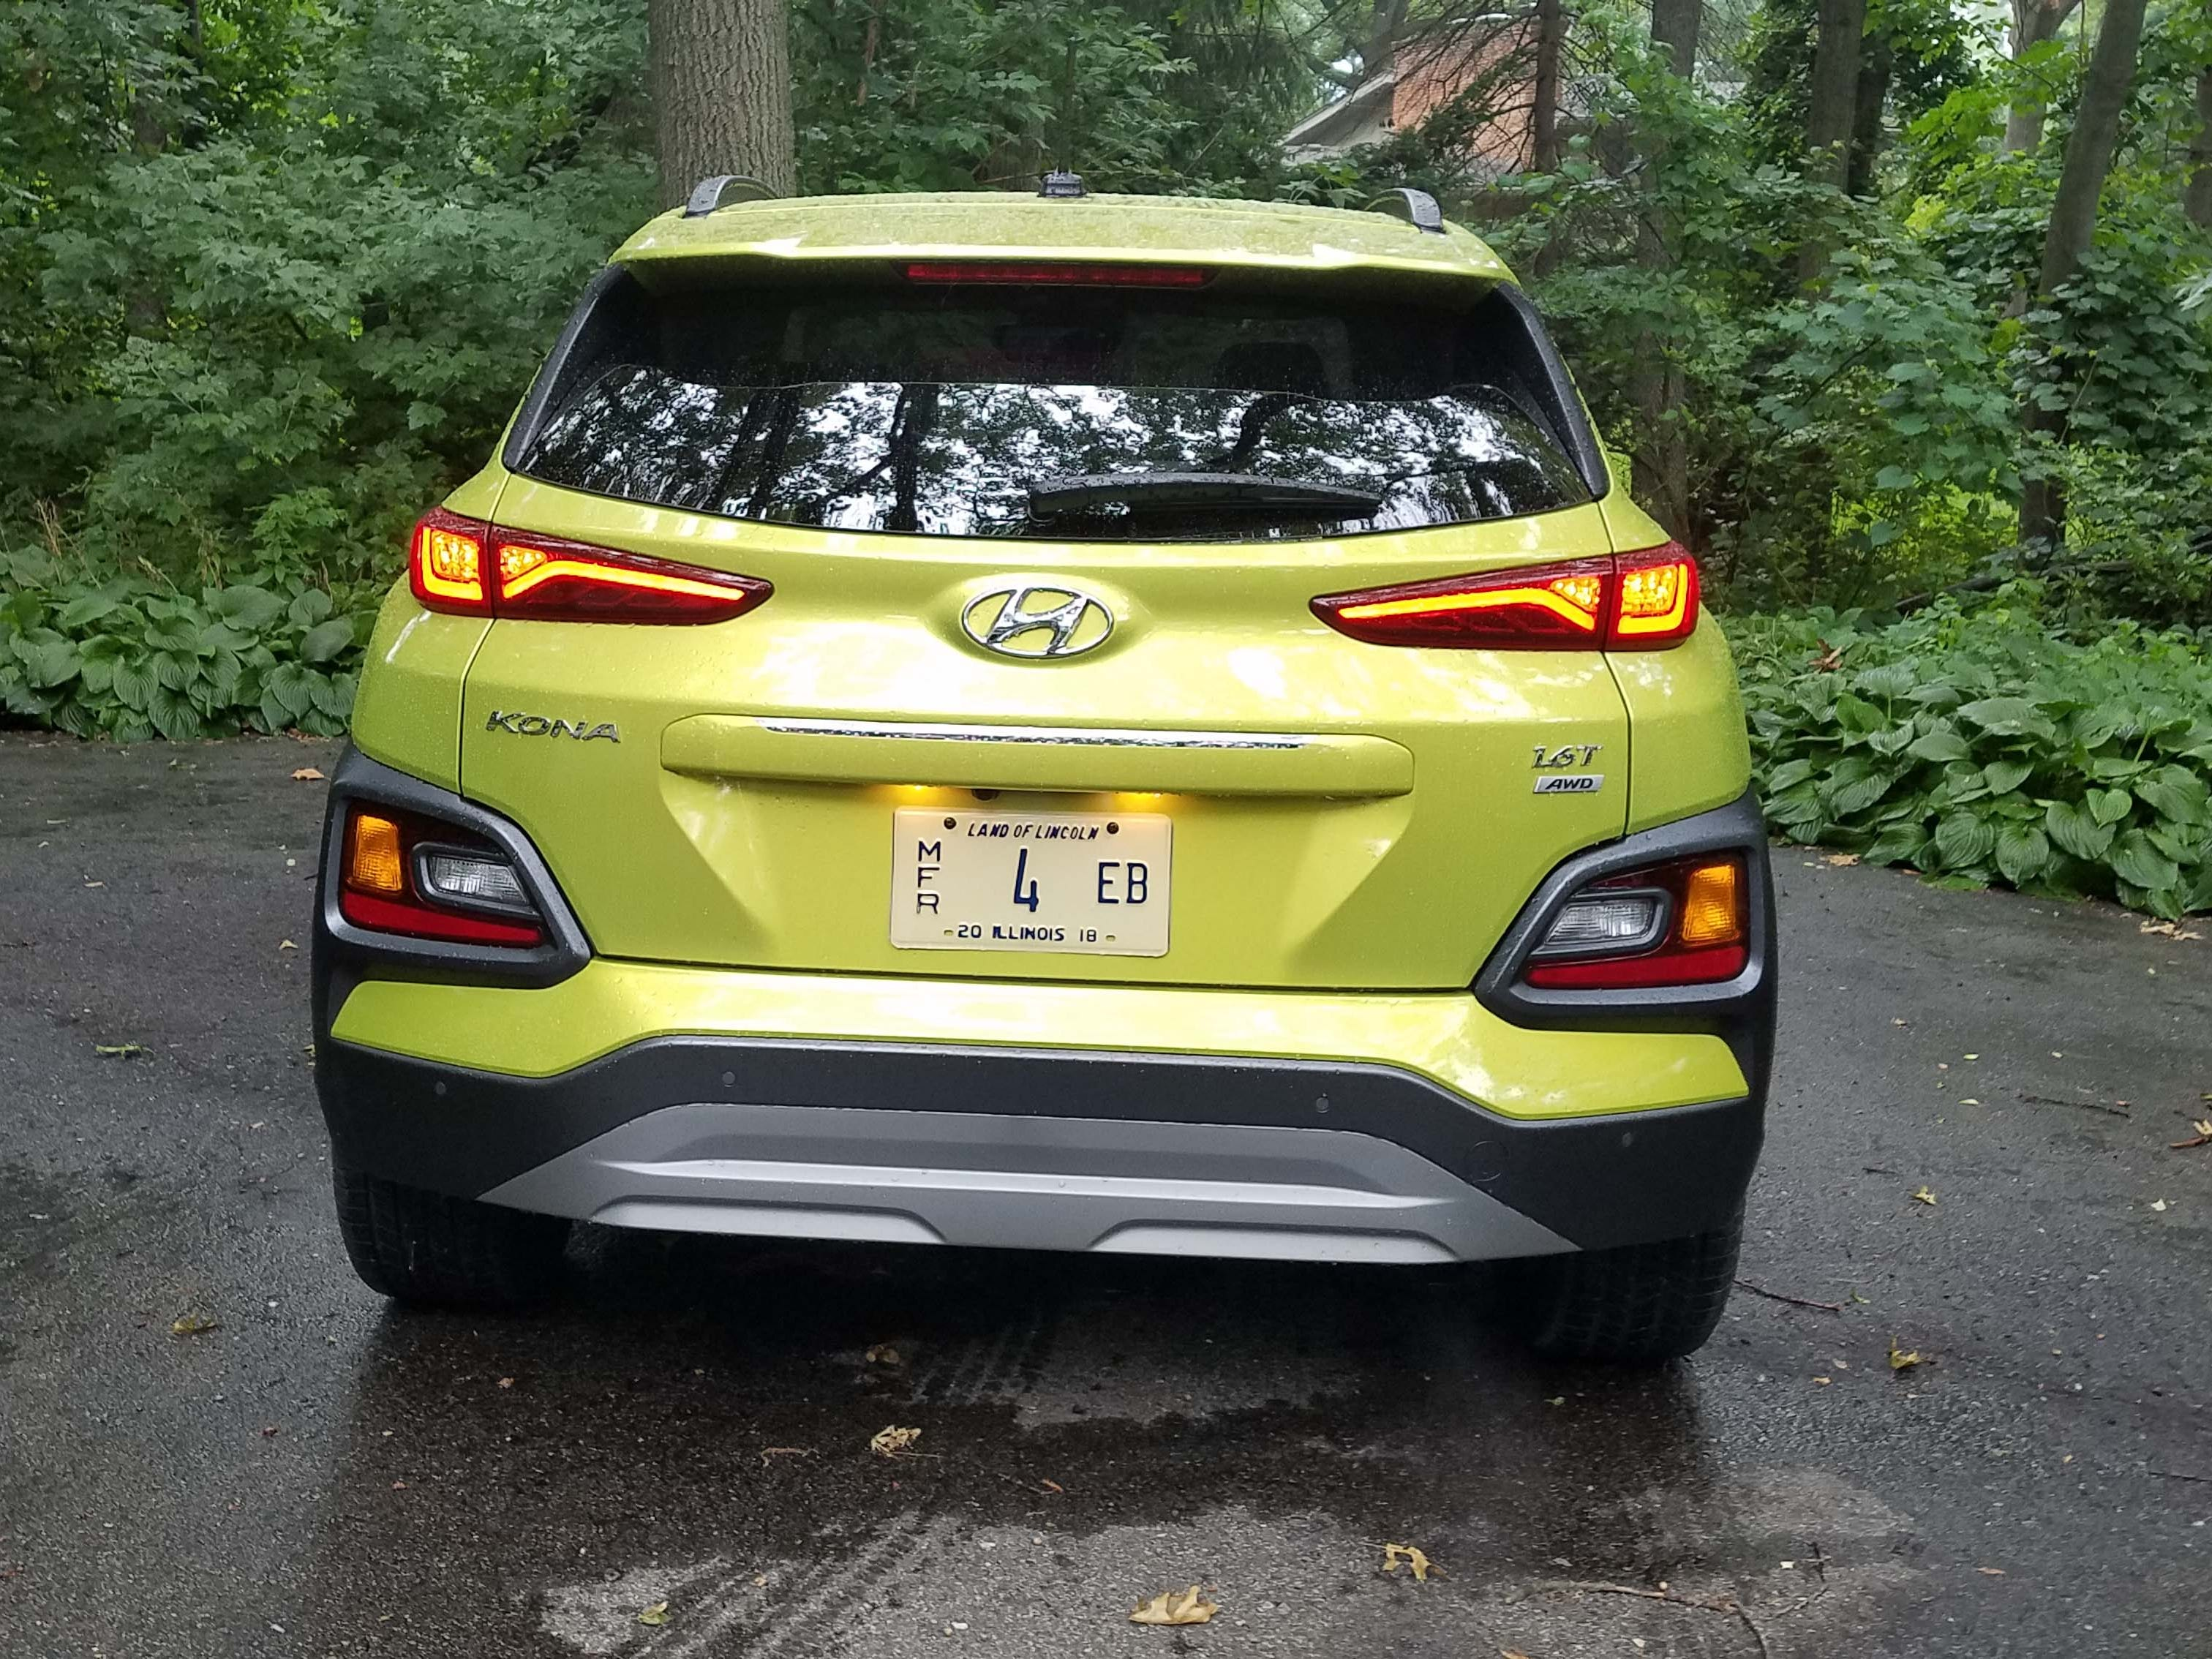 Why let the front end get all the attention? The rear of the  2018 Hyundai Kona is almost as unconventional as the front, with two tiers of lights.